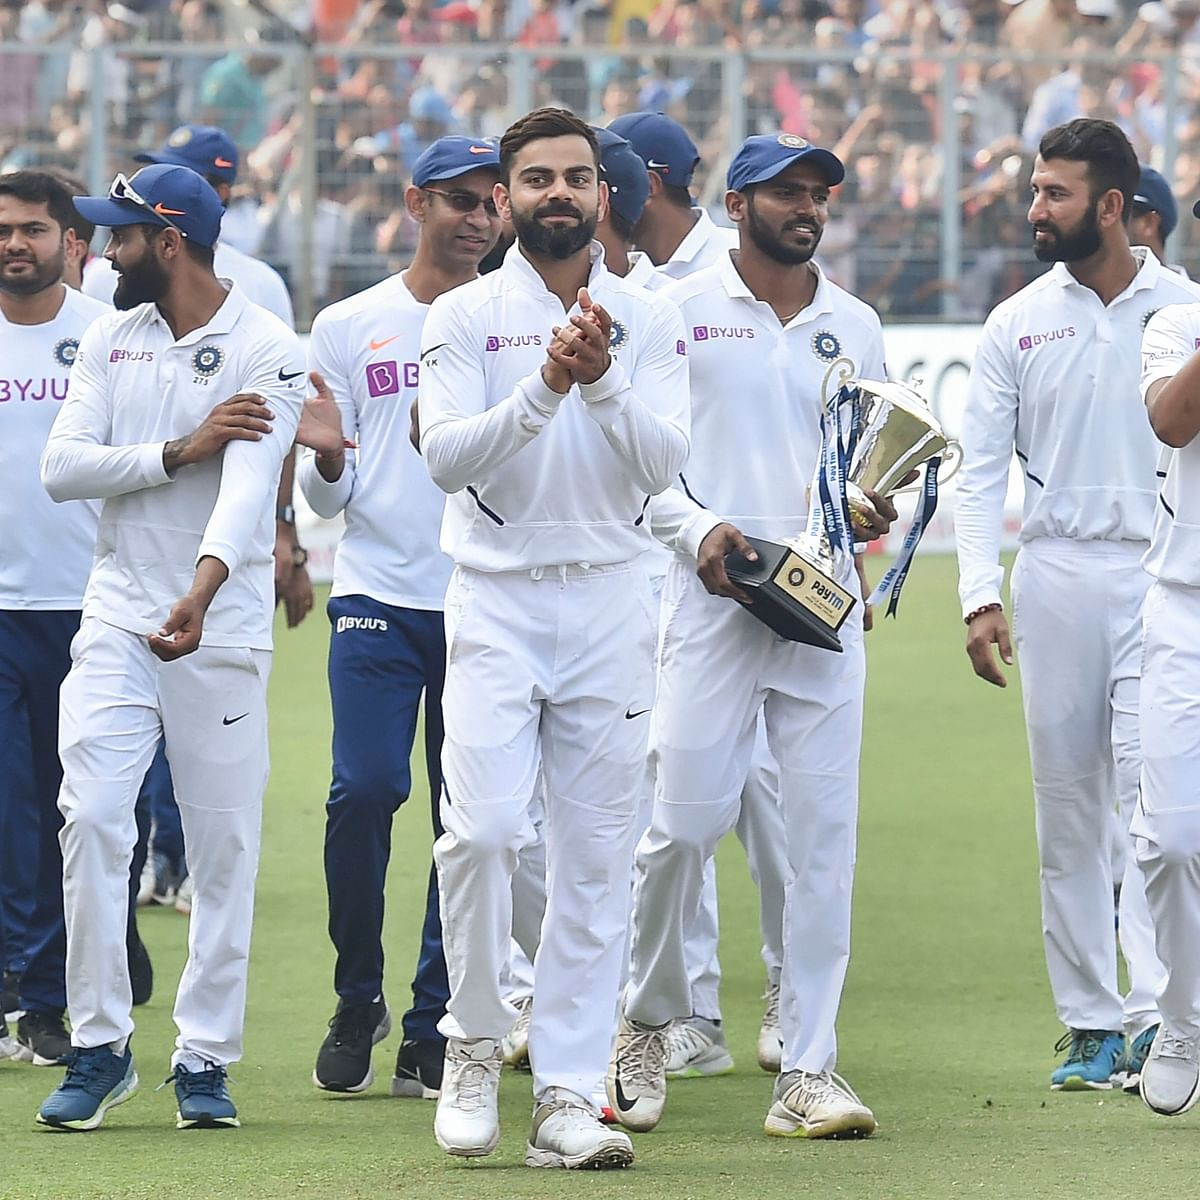 India won by an innings and 46 runs against Bangladesh